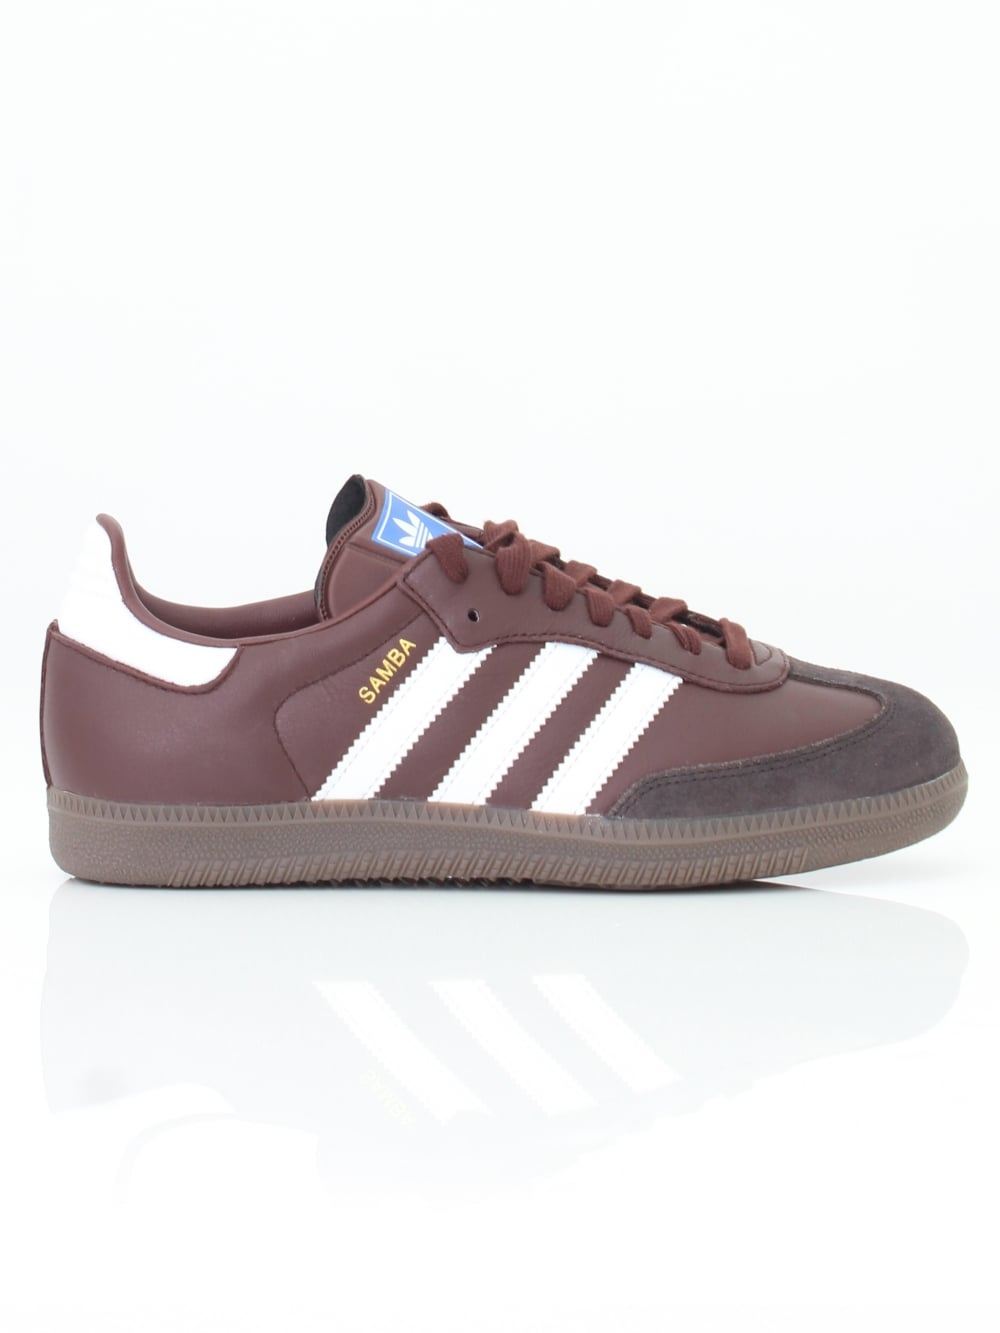 67e6535d56d8cb adidas Samba OG Trainer in Mystery Brown - Northern Threads